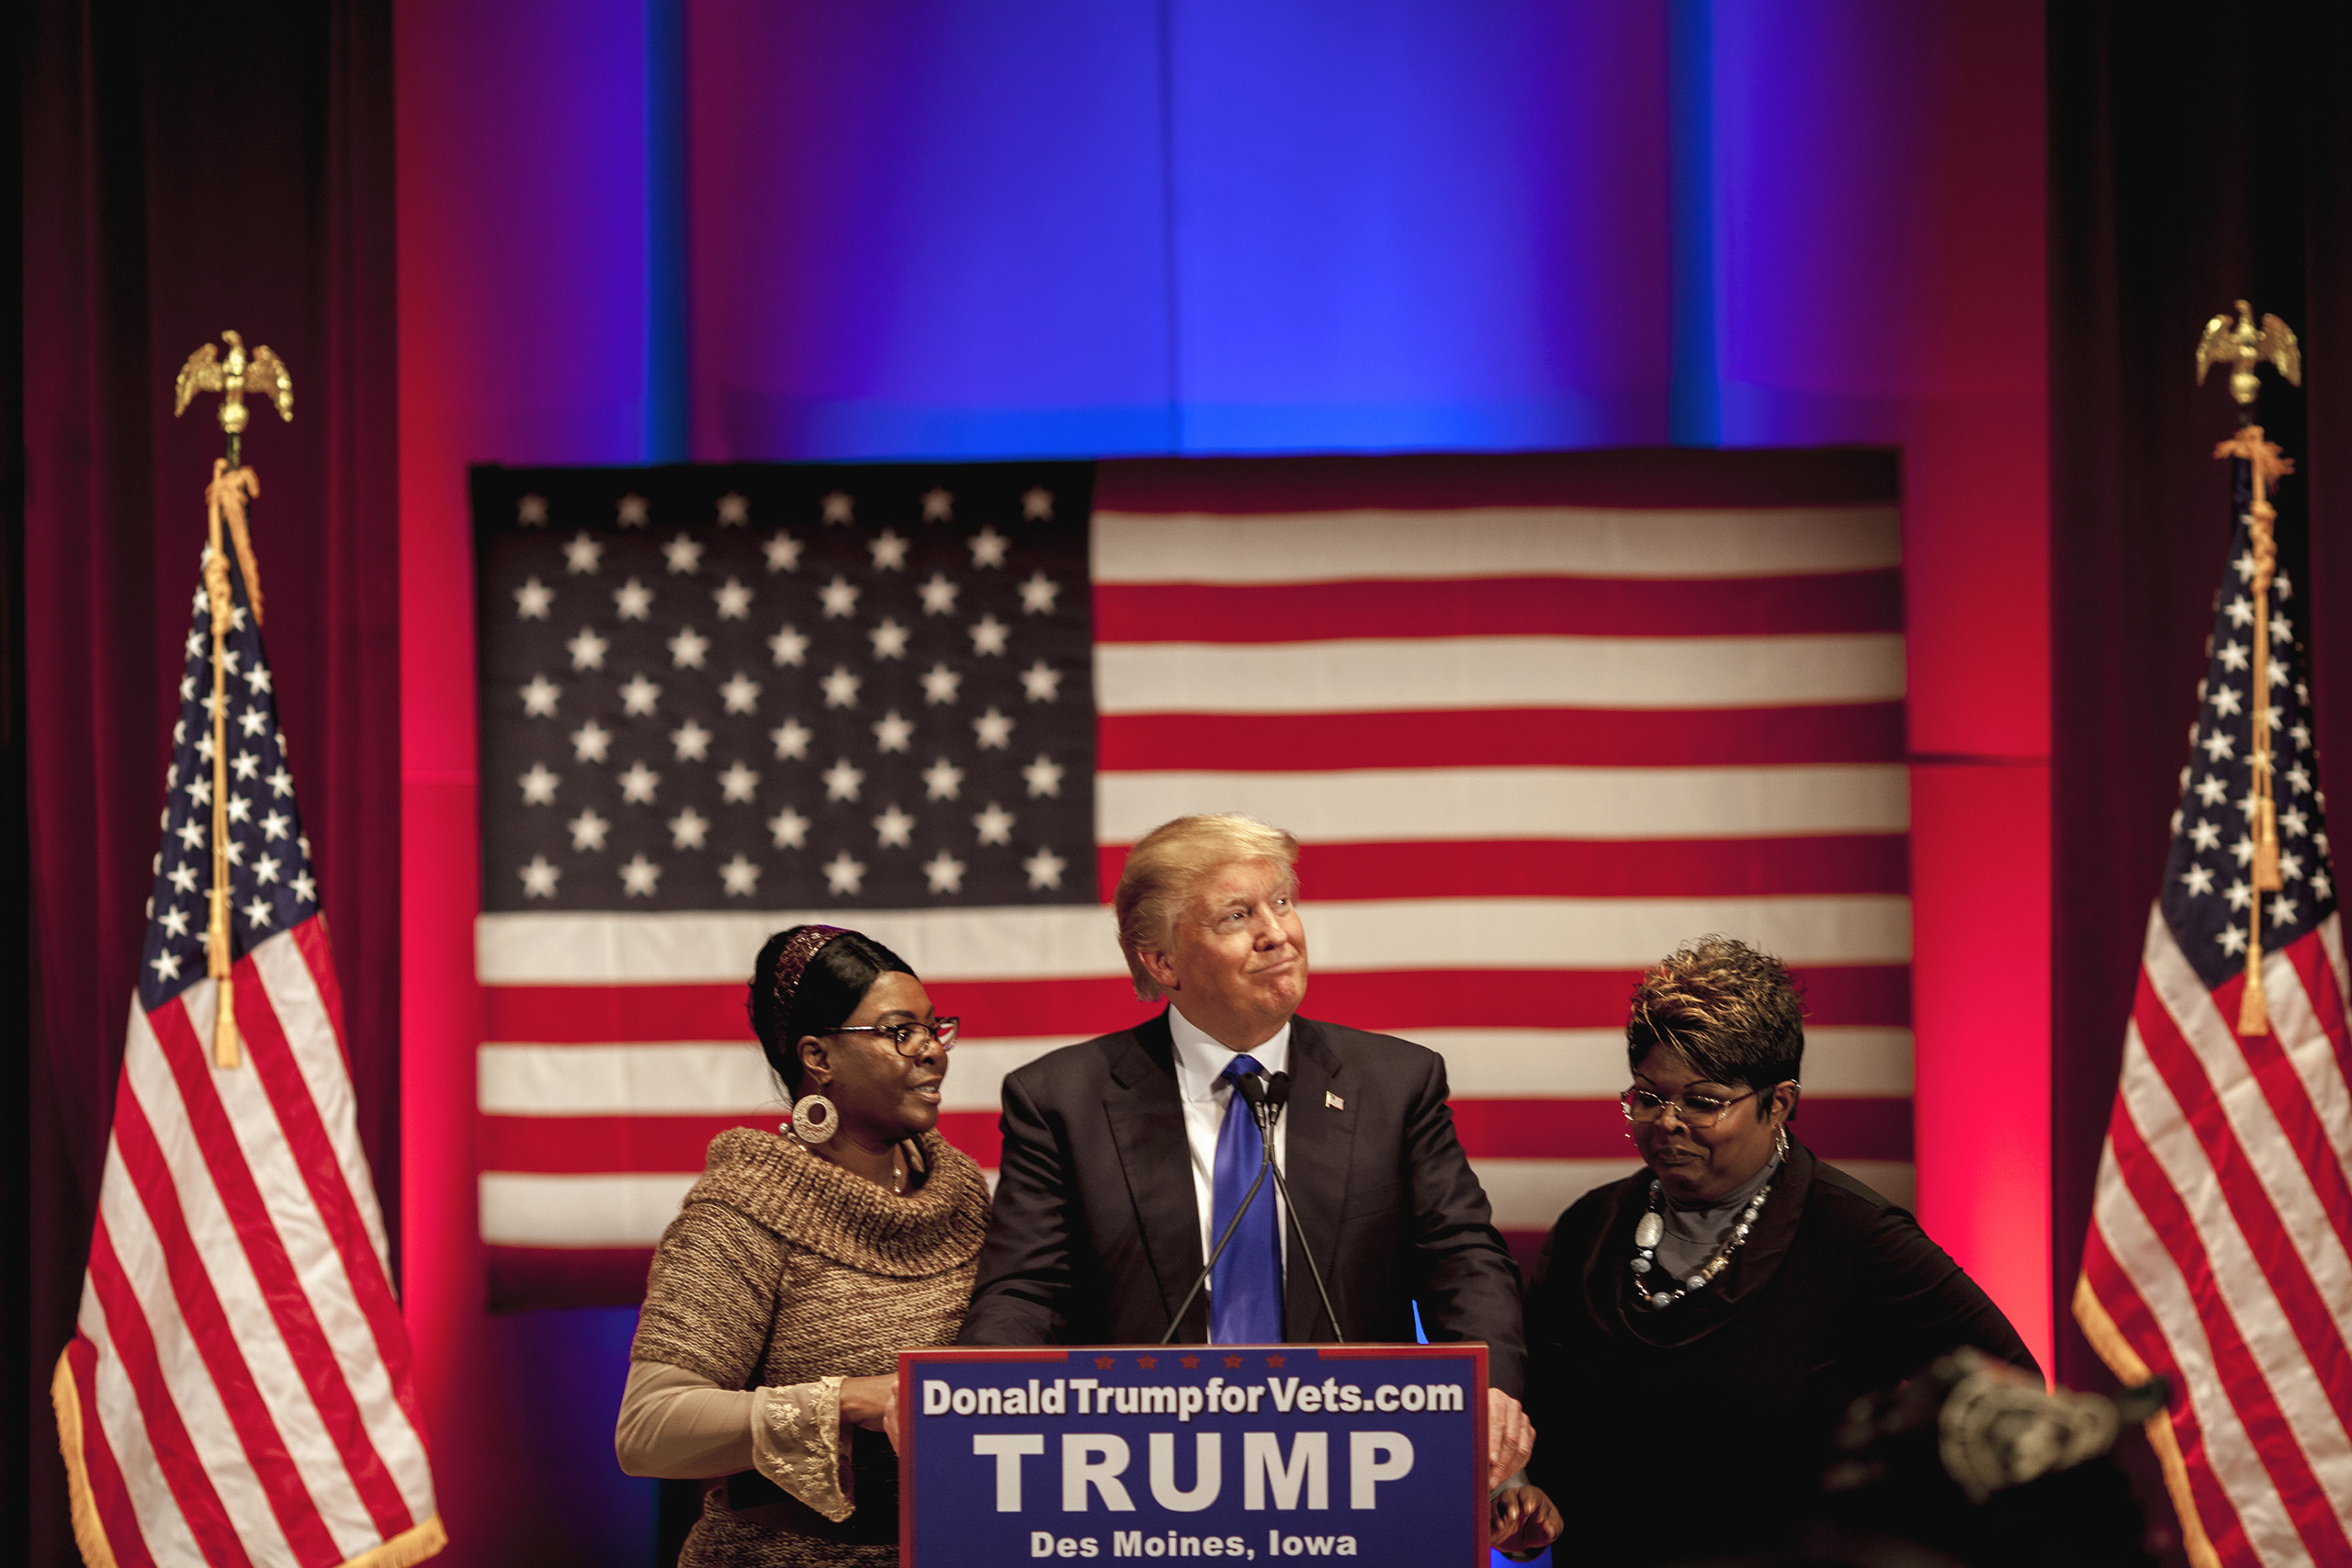 Donald Trump appears with supporters Diamond and Silk at benefit and rally for Wounded Warriors, a charity organization for Veterans,  at Drake University in Des Moines, Iowa, on Thursday, Jan. 28, 2016. The event was timed to coincide with the Republican debates on Fox which he declined to attend.